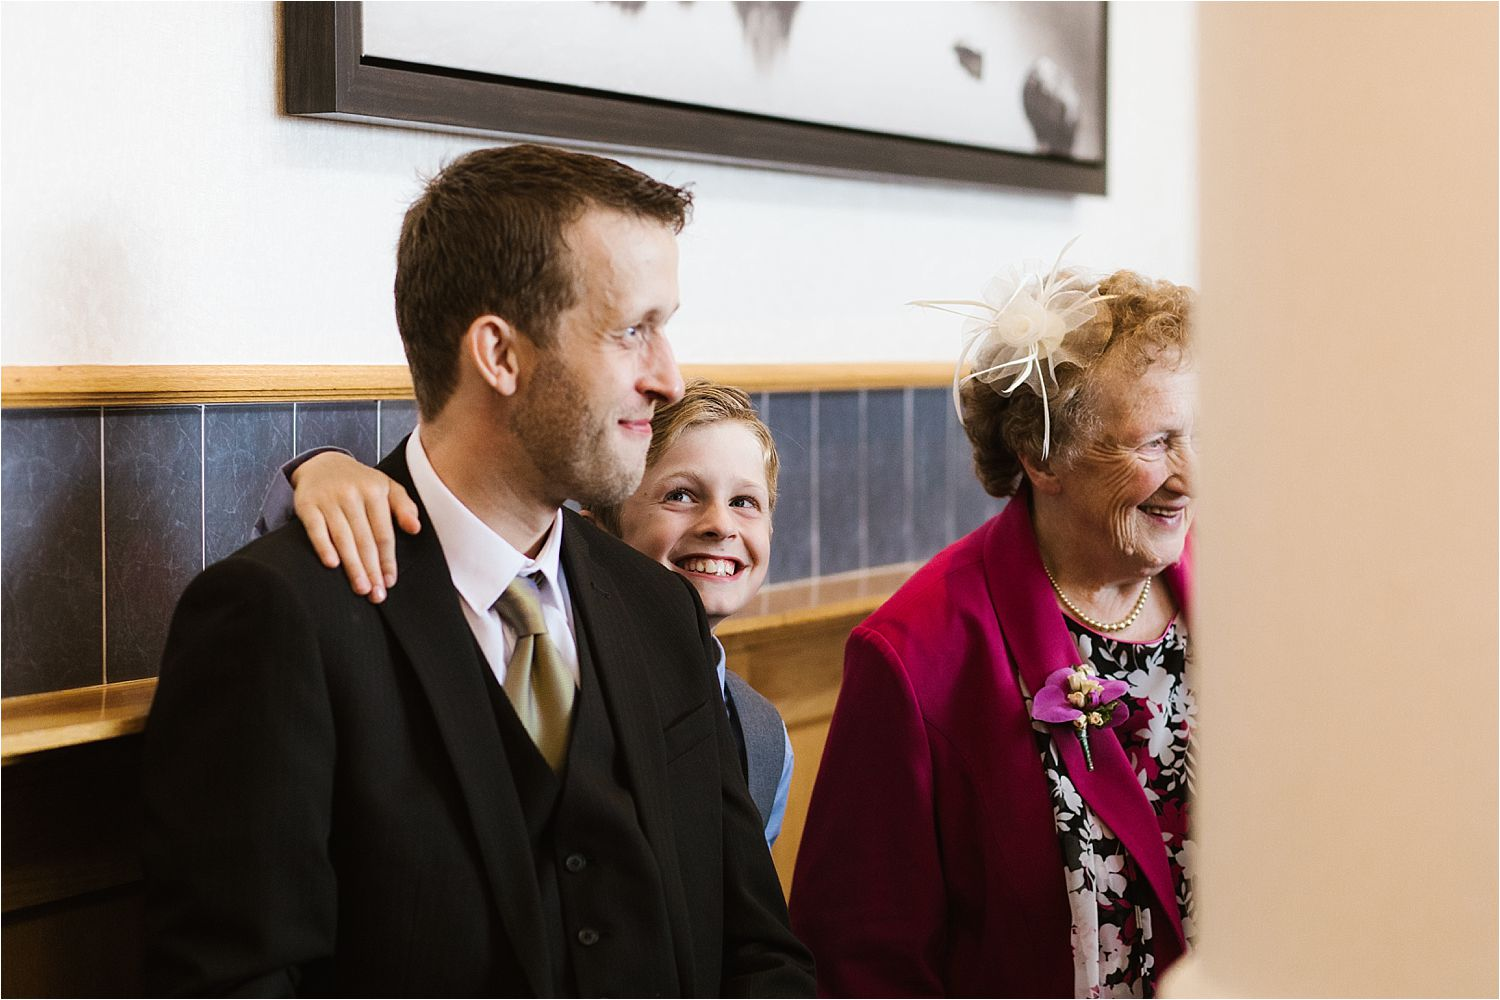 Smiling wedding guests at Low Wood Bay wedding